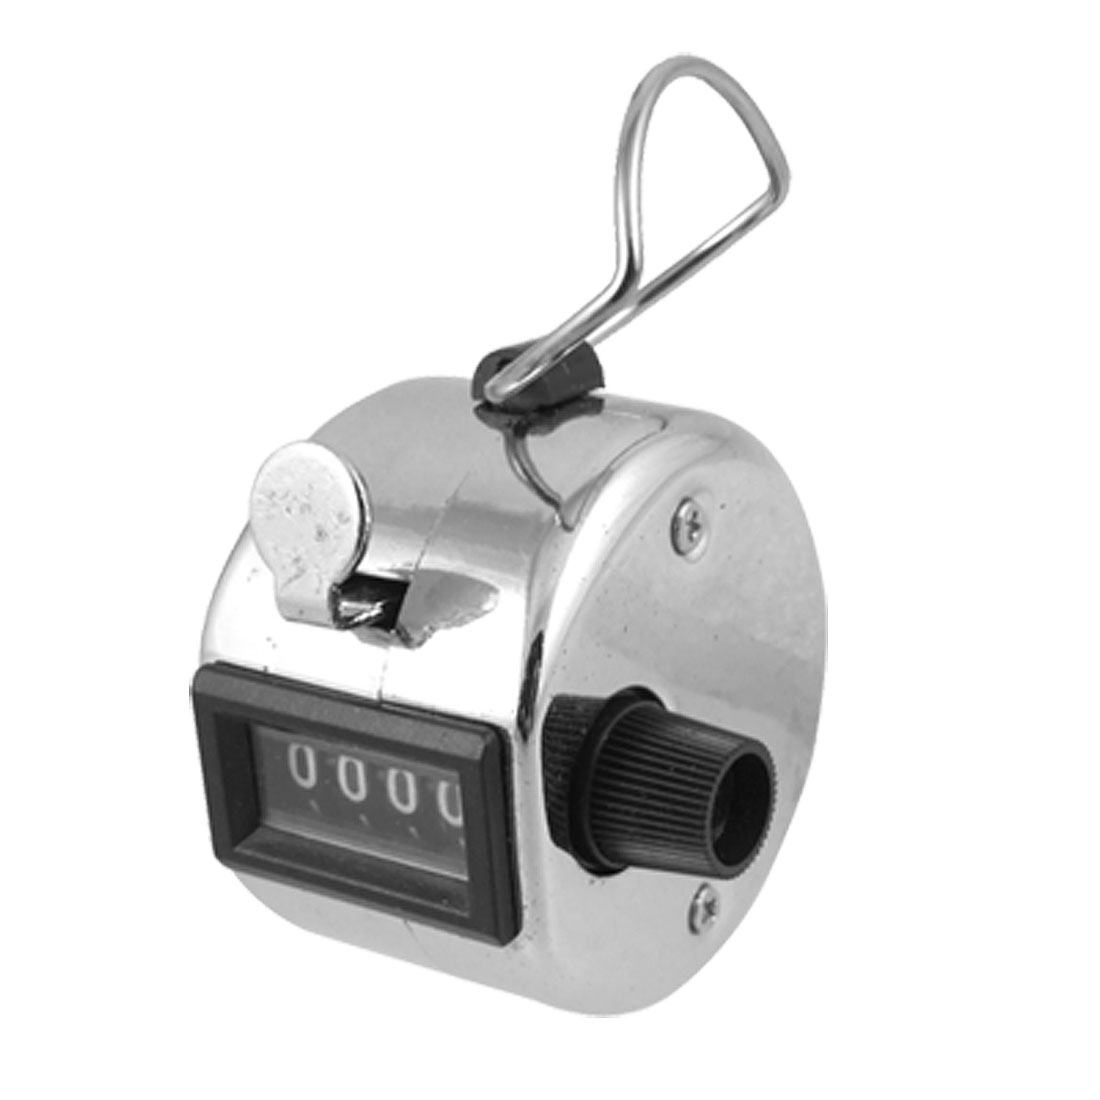 4 Digits Metal Silver Tone Hand Tally Counter for Statistic